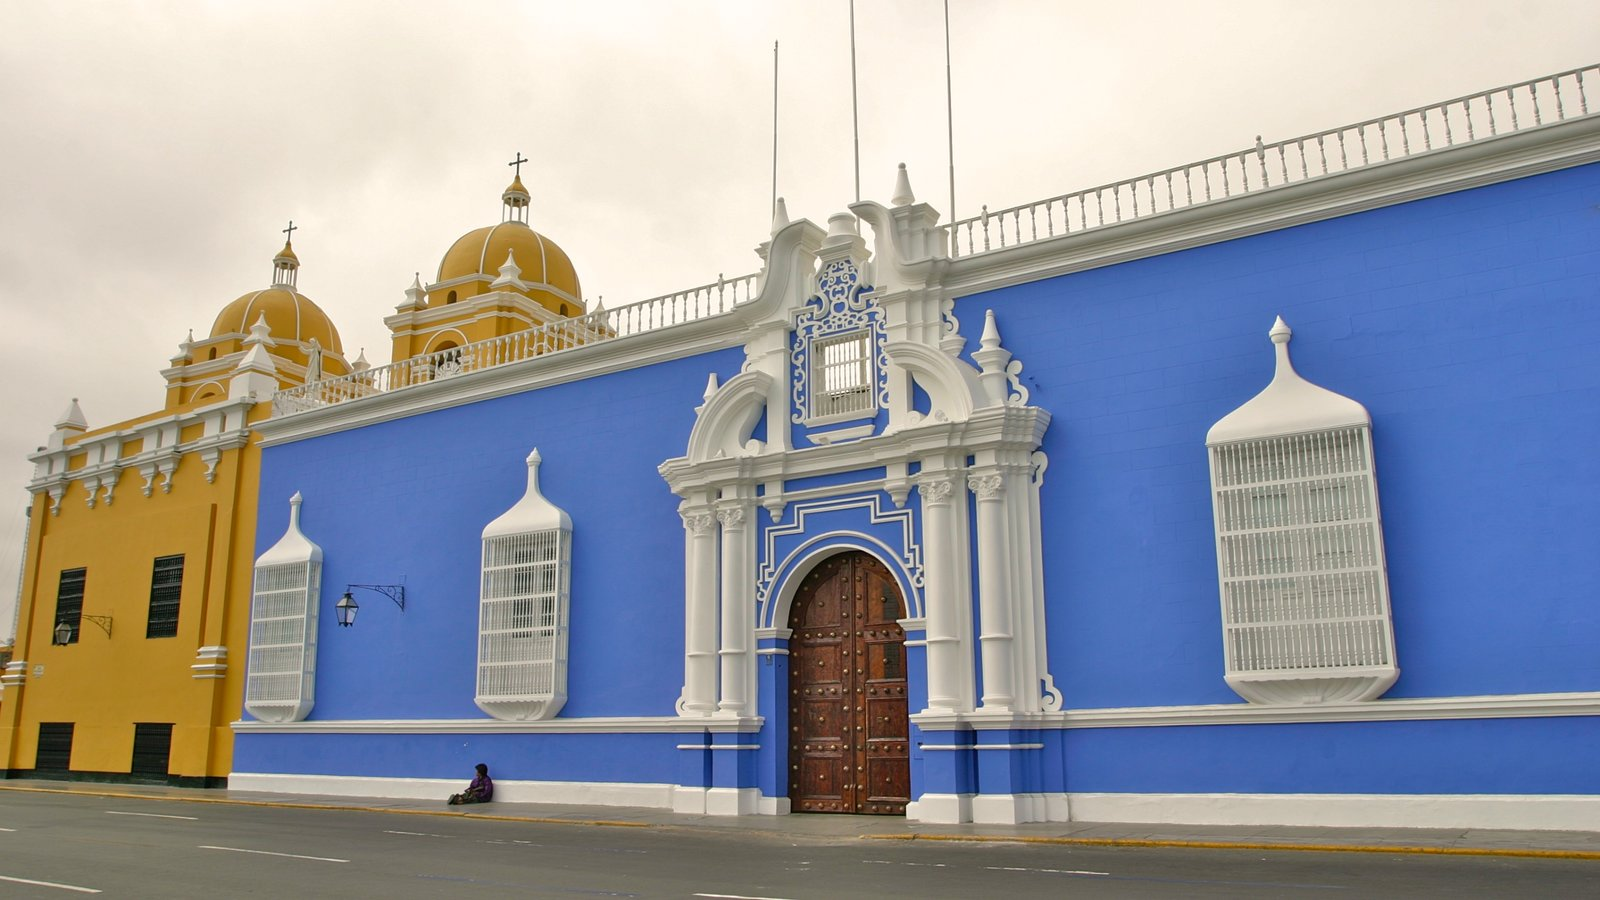 Trujillo featuring a church or cathedral and heritage architecture